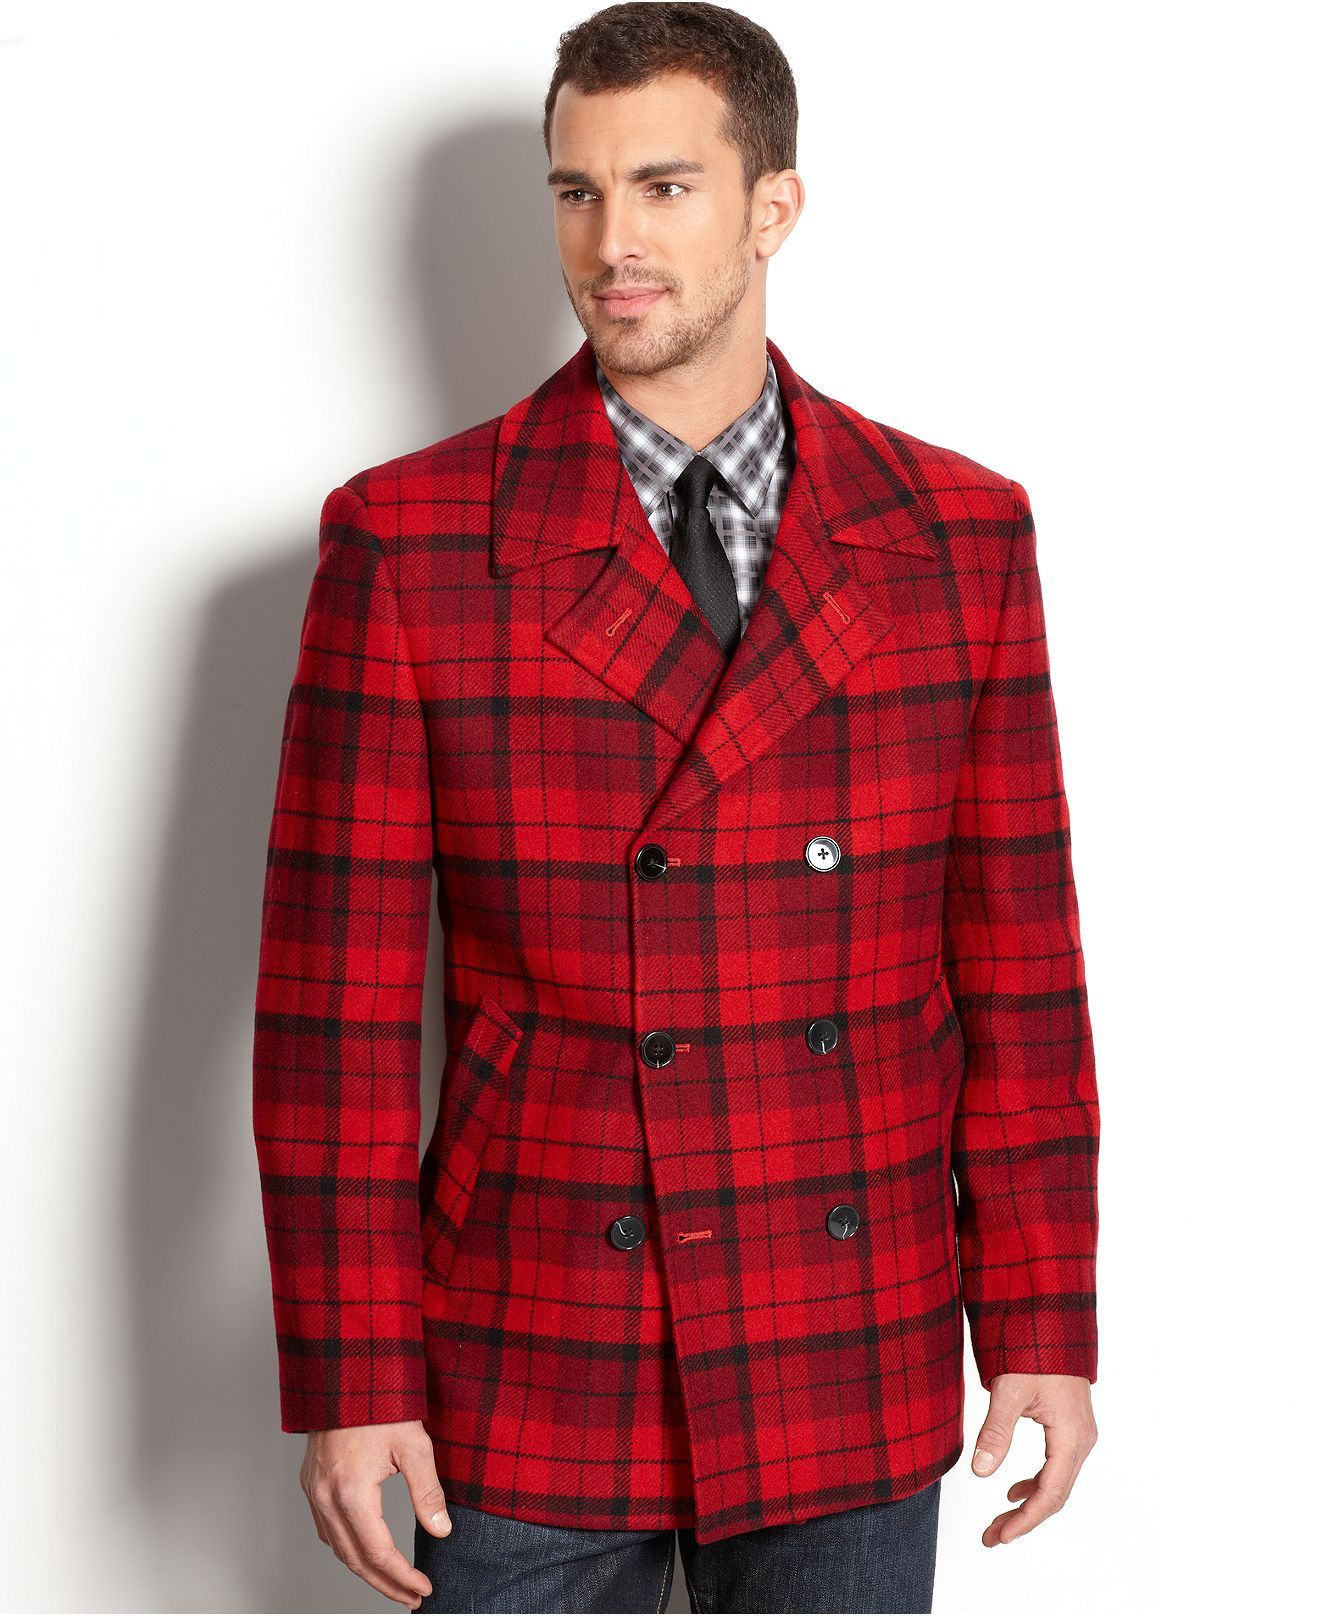 Tallia Orange Coat, Red Plaid Double Breasted Peacoat - Mens Coats ...